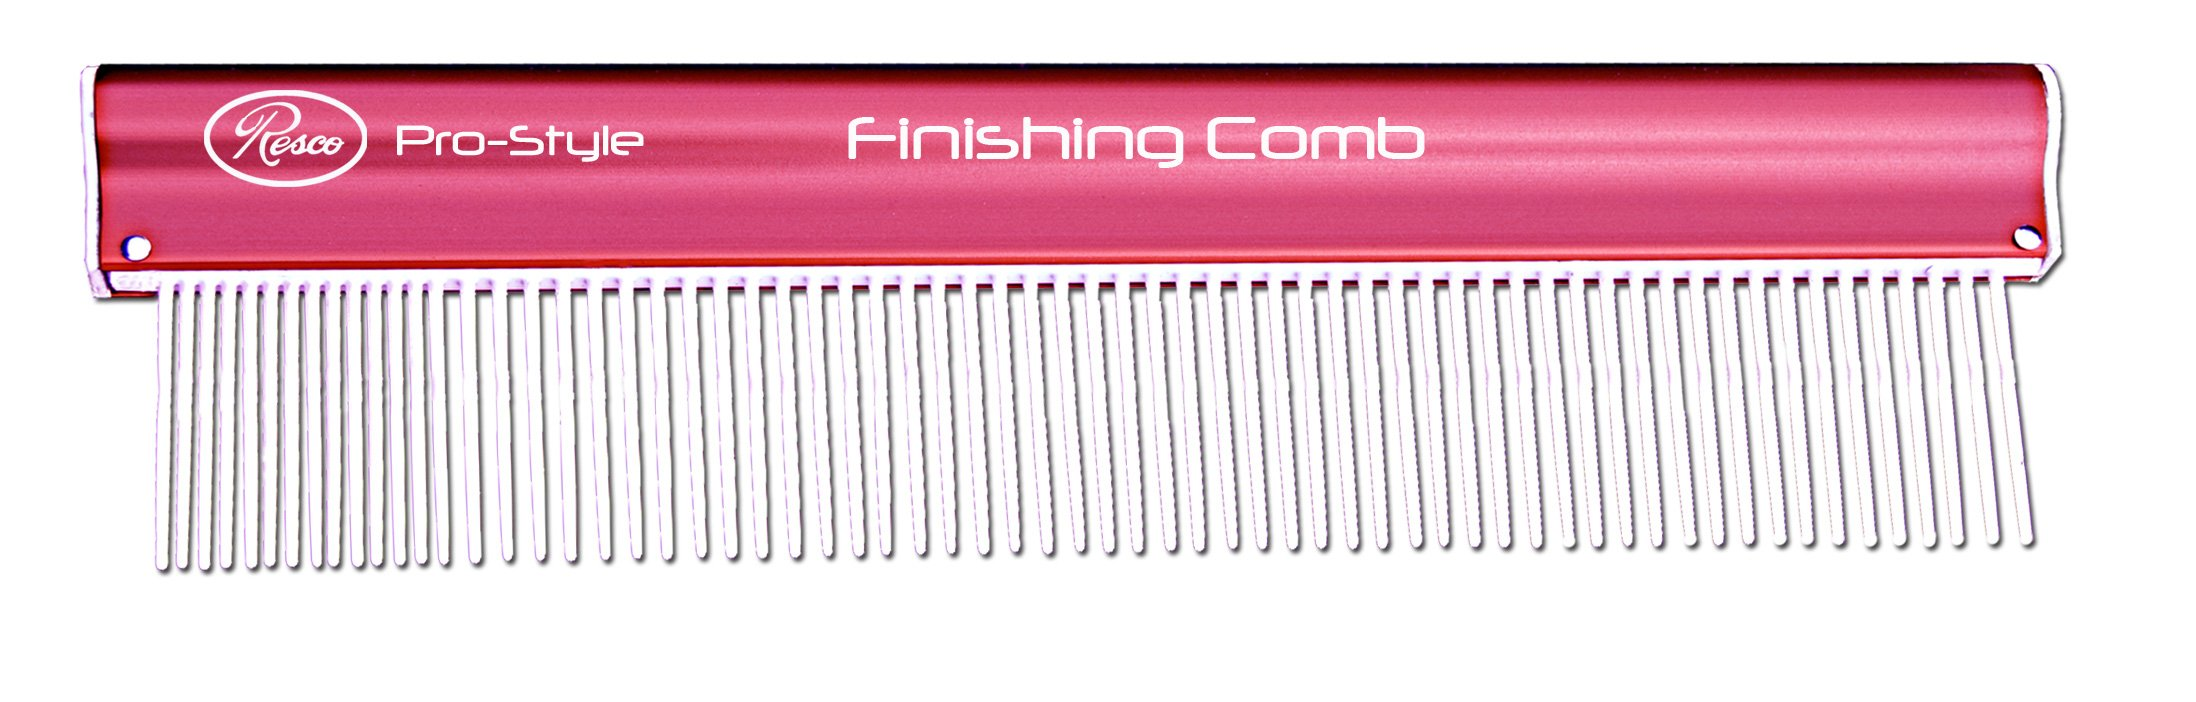 Resco Pro-Style 10'' Finishing Dog, Cat, Horse, Pet Comb for Grooming, Medium to Fine Pin Spacing, Pink